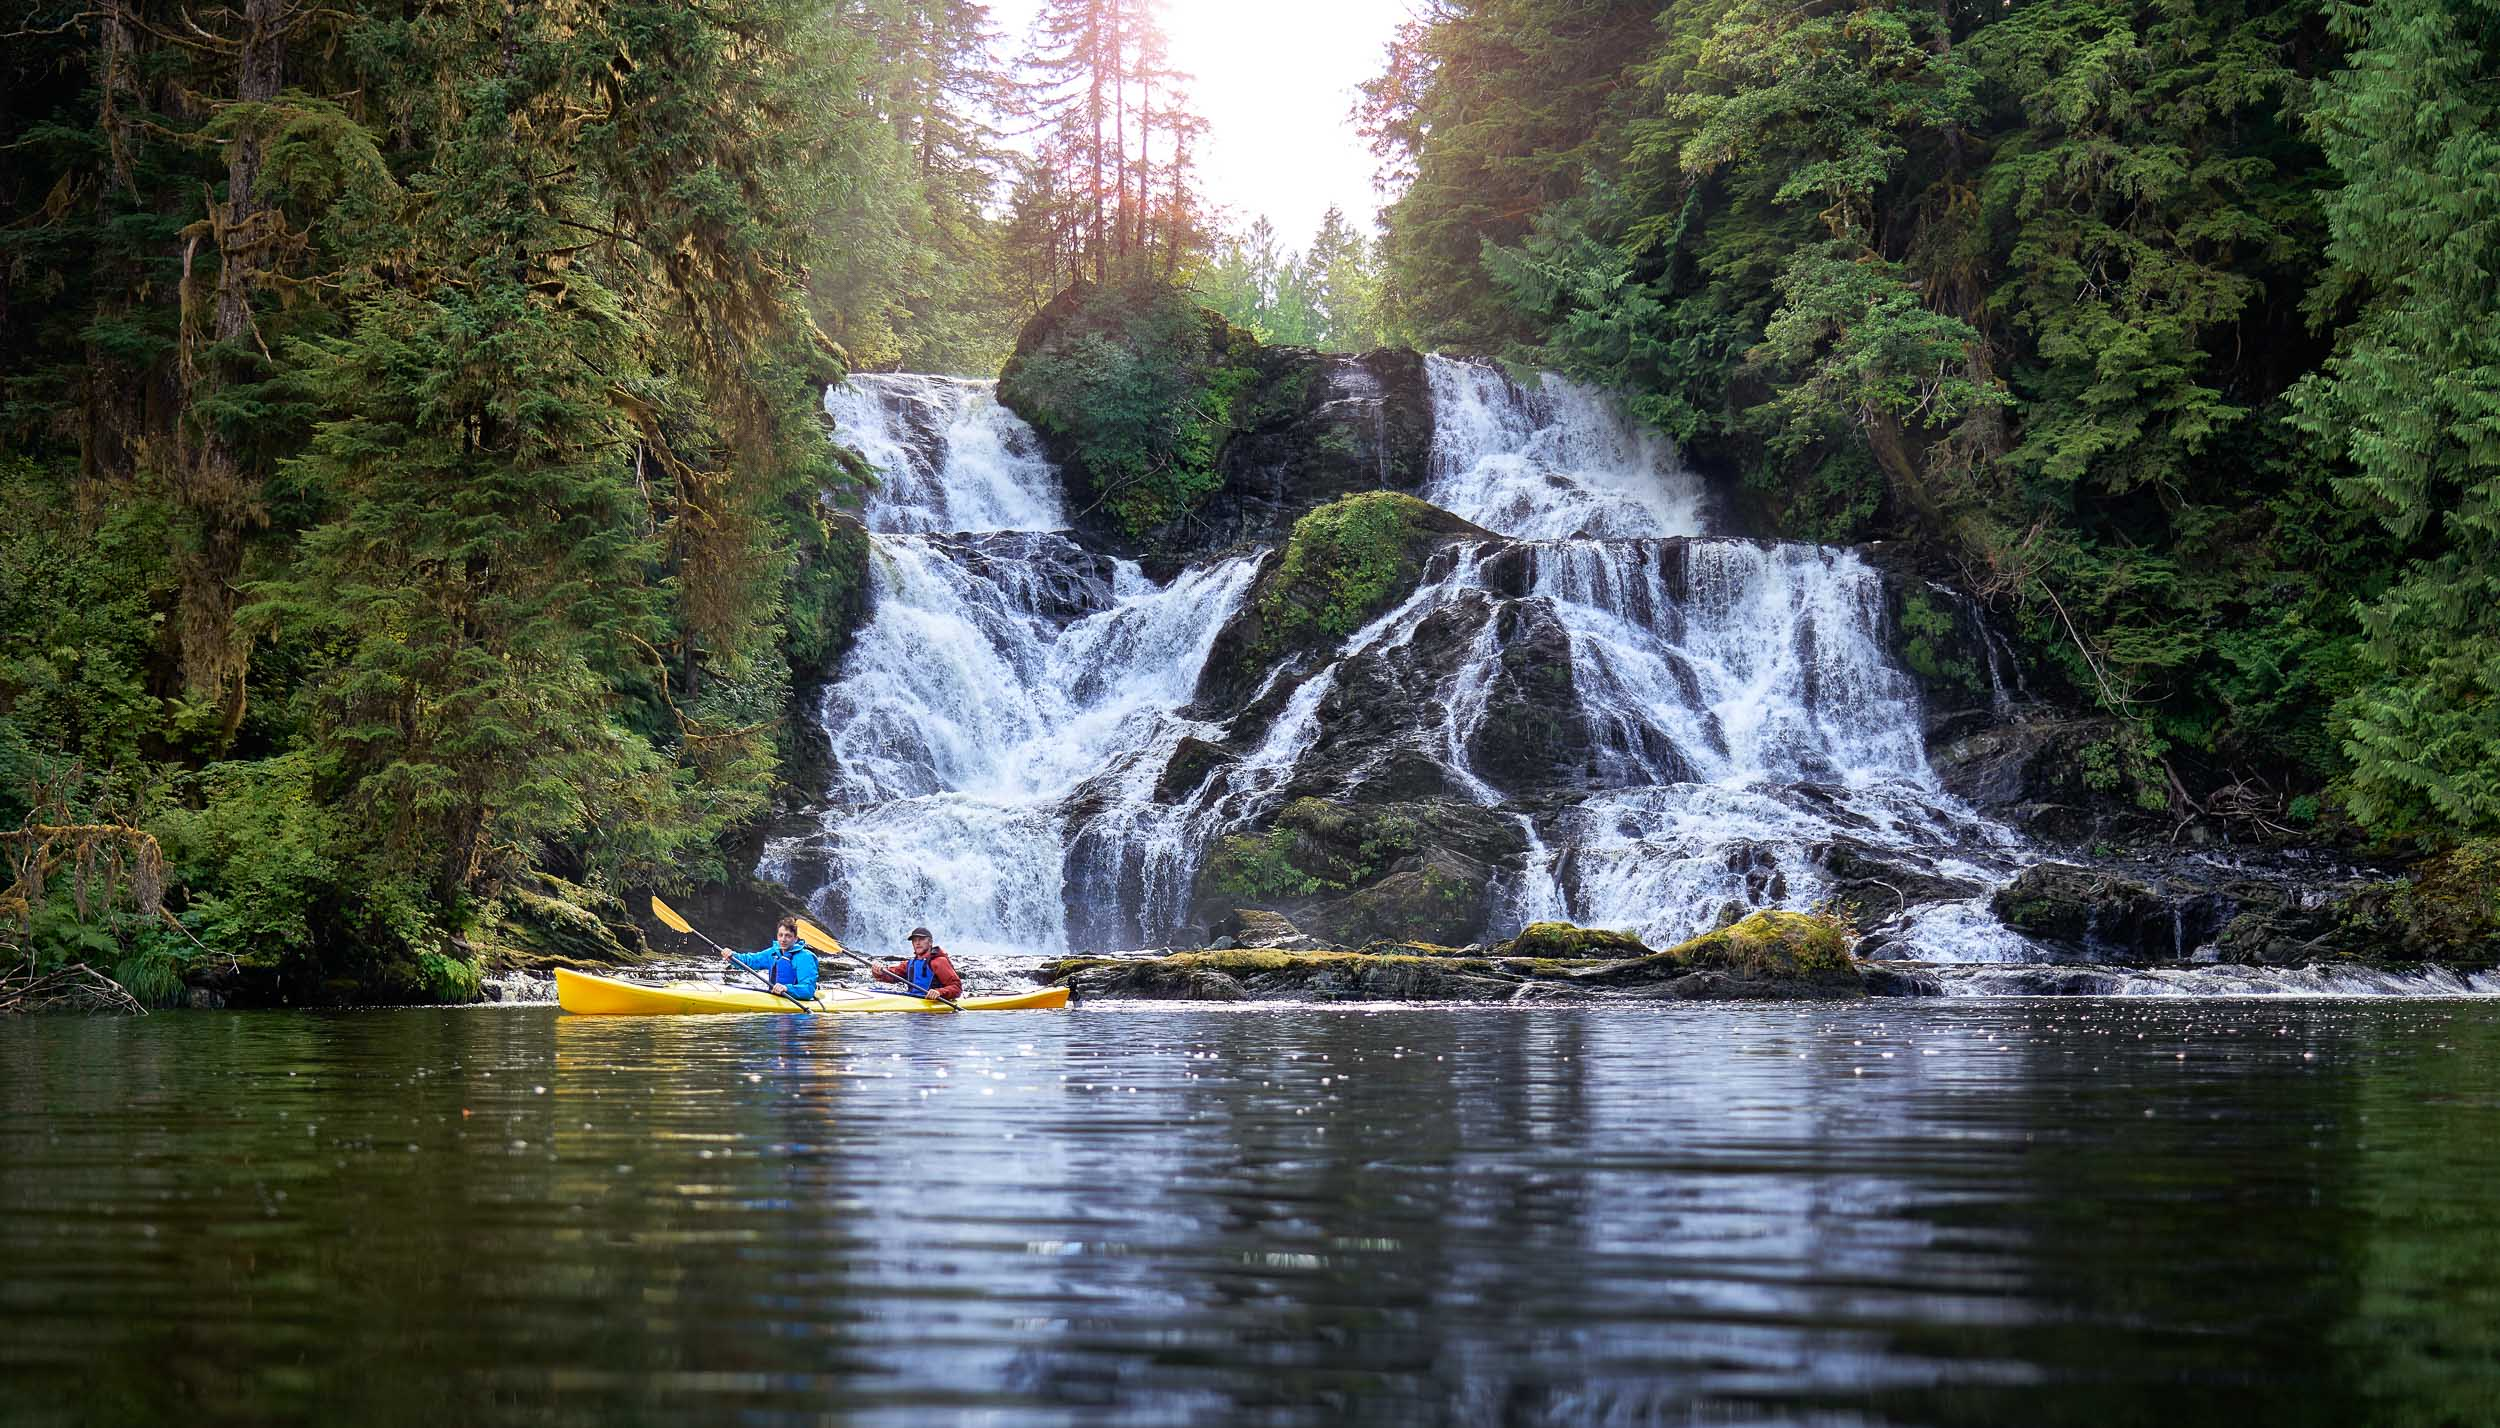 Kayaking in front of a beautiful waterfall